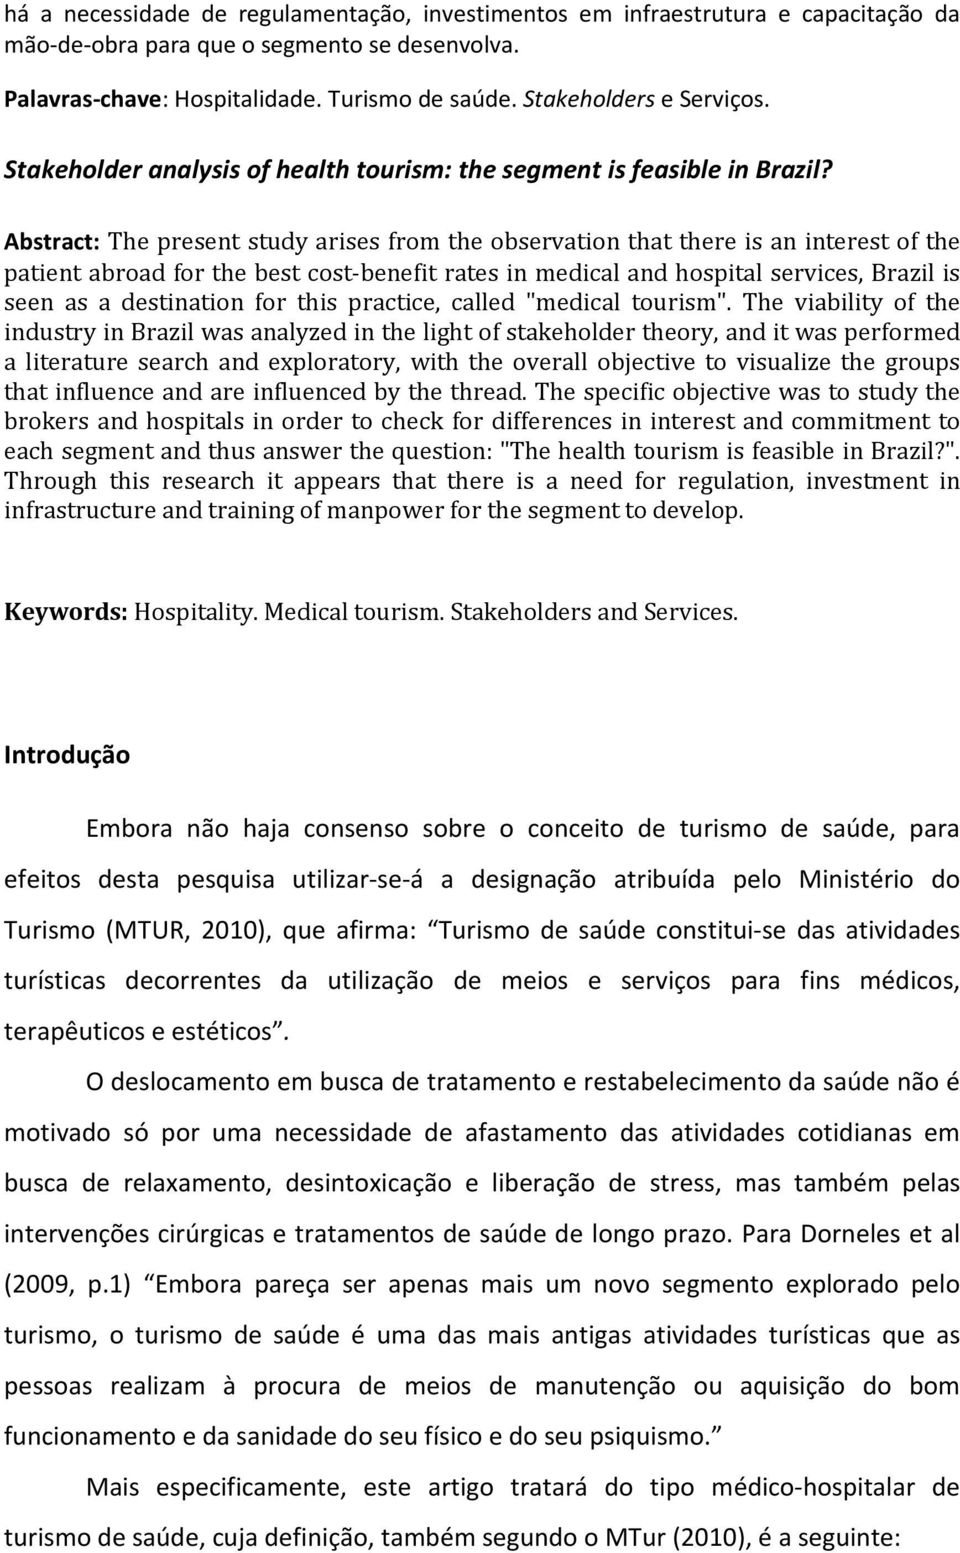 Abstract: The present study arises from the observation that there is an interest of the patient abroad for the best cost-benefit rates in medical and hospital services, Brazil is seen as a